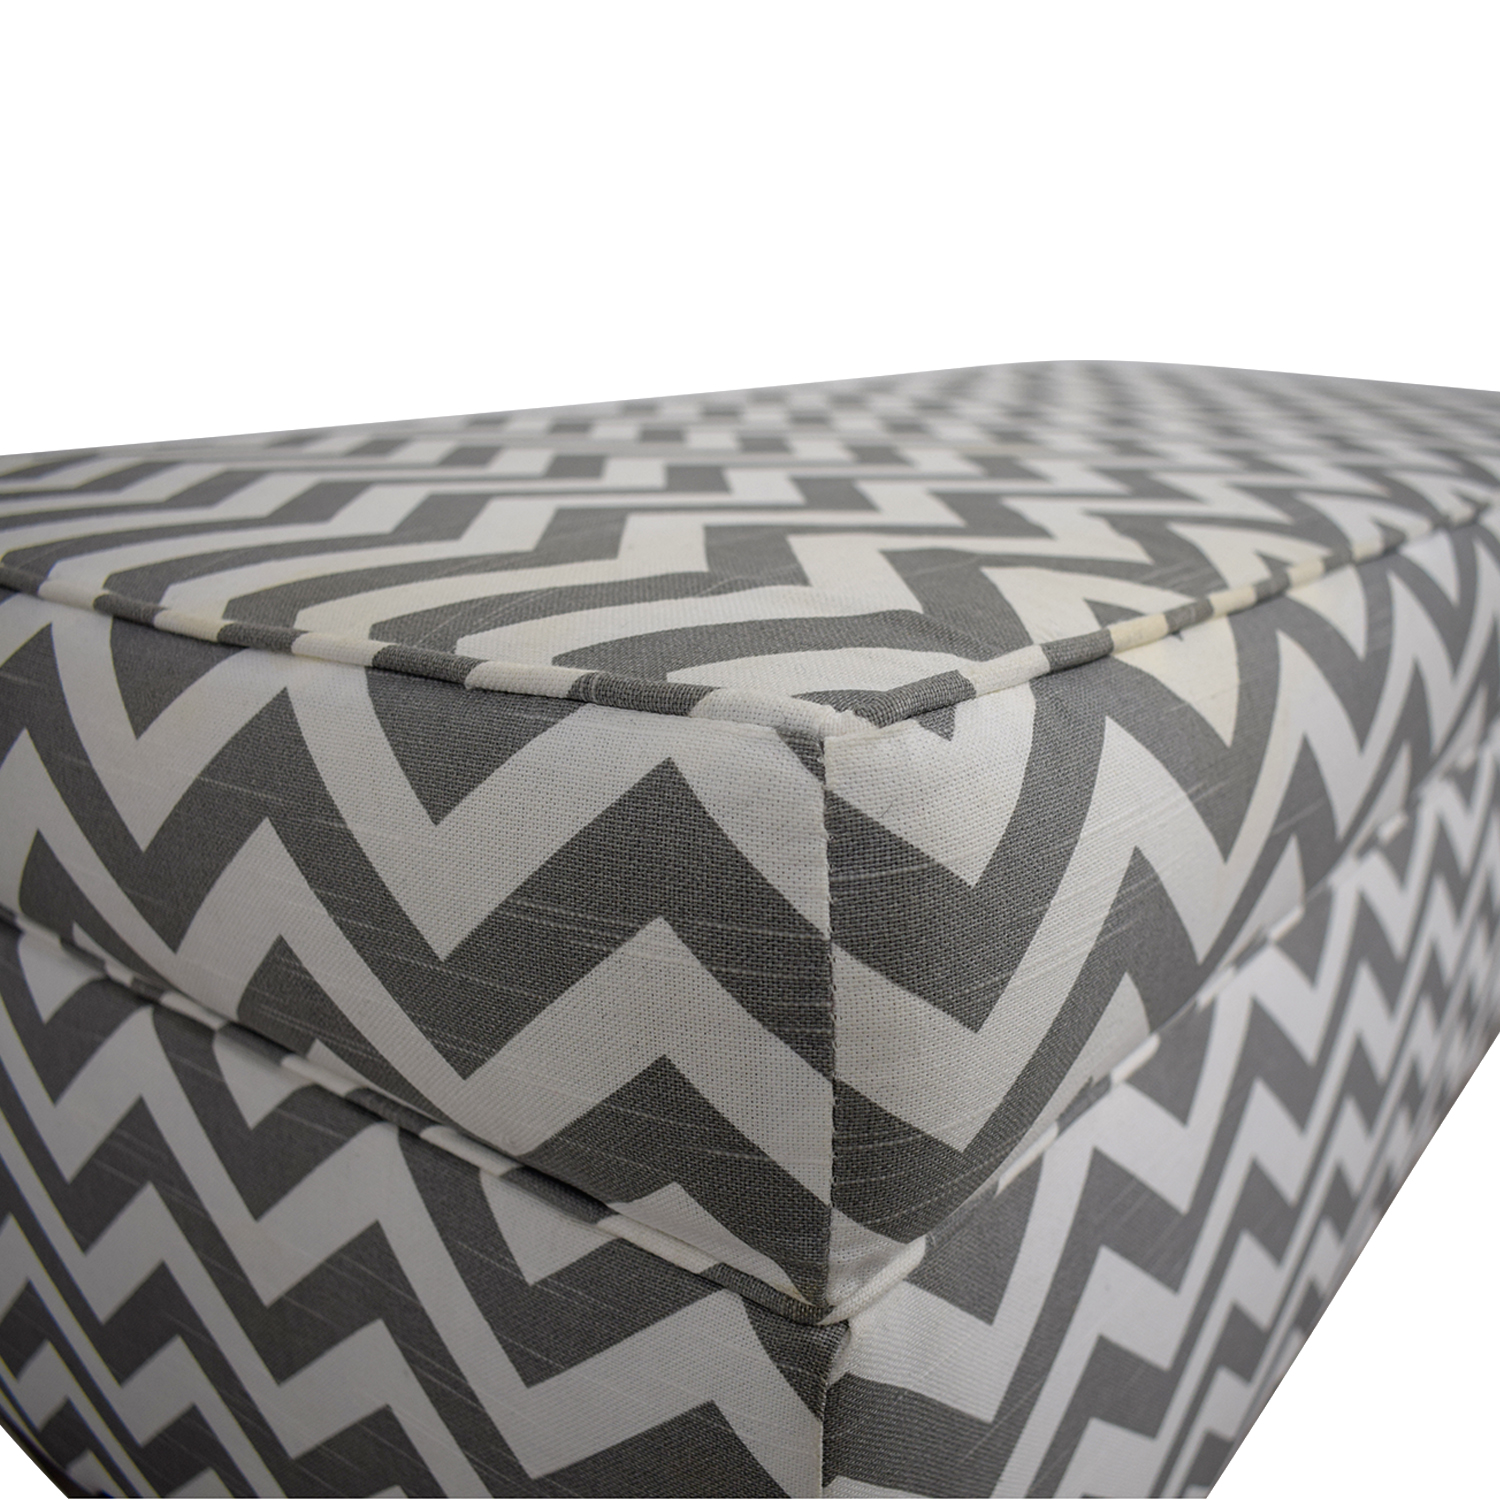 Target Target Grey and White Storage Bench or Ottoman dimensions